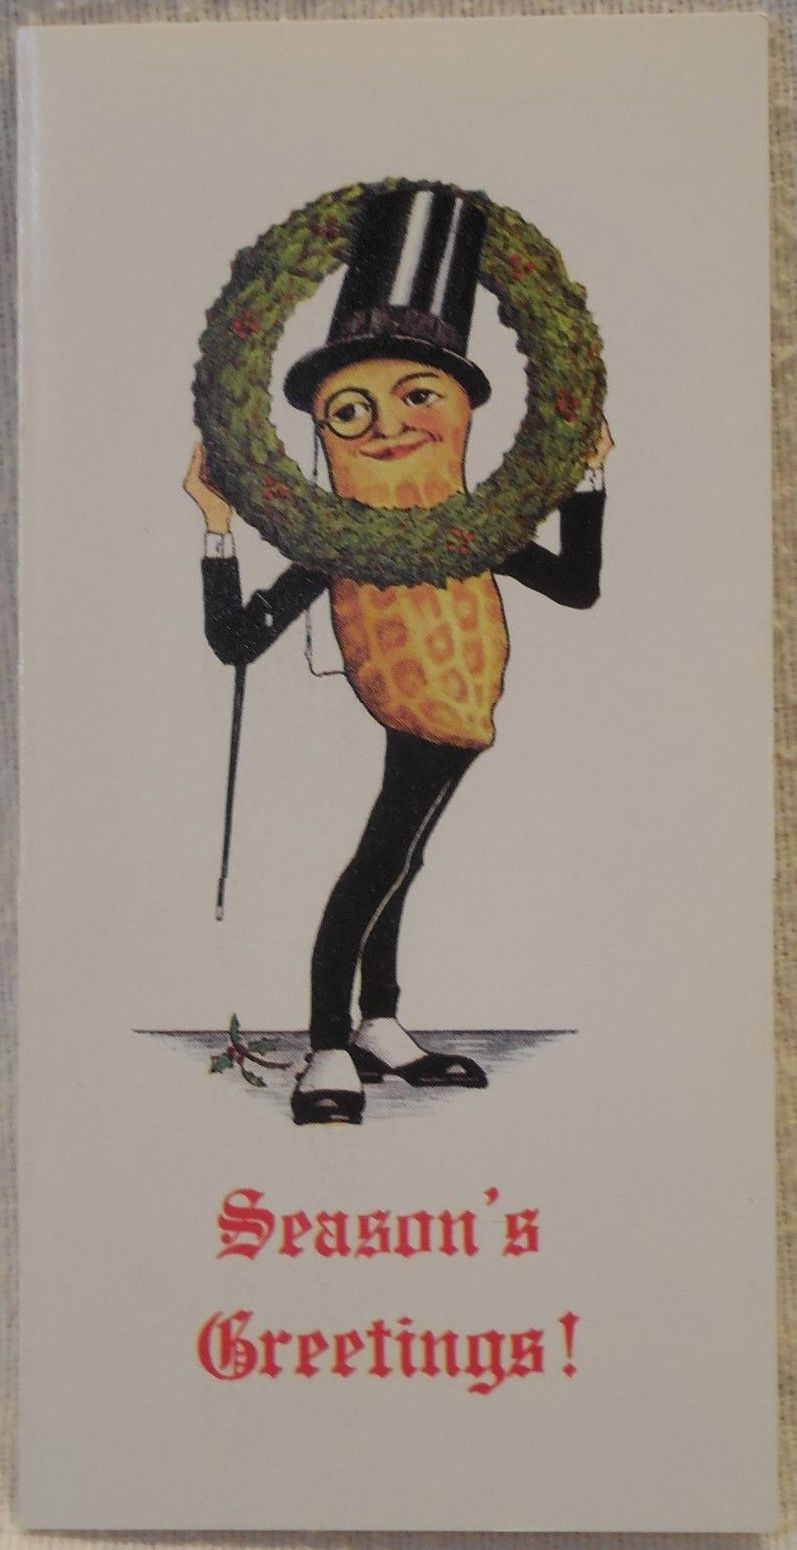 Christmas Planters Peanuts.Mr Peanut Greeting Card Christmas Planters Peanuts